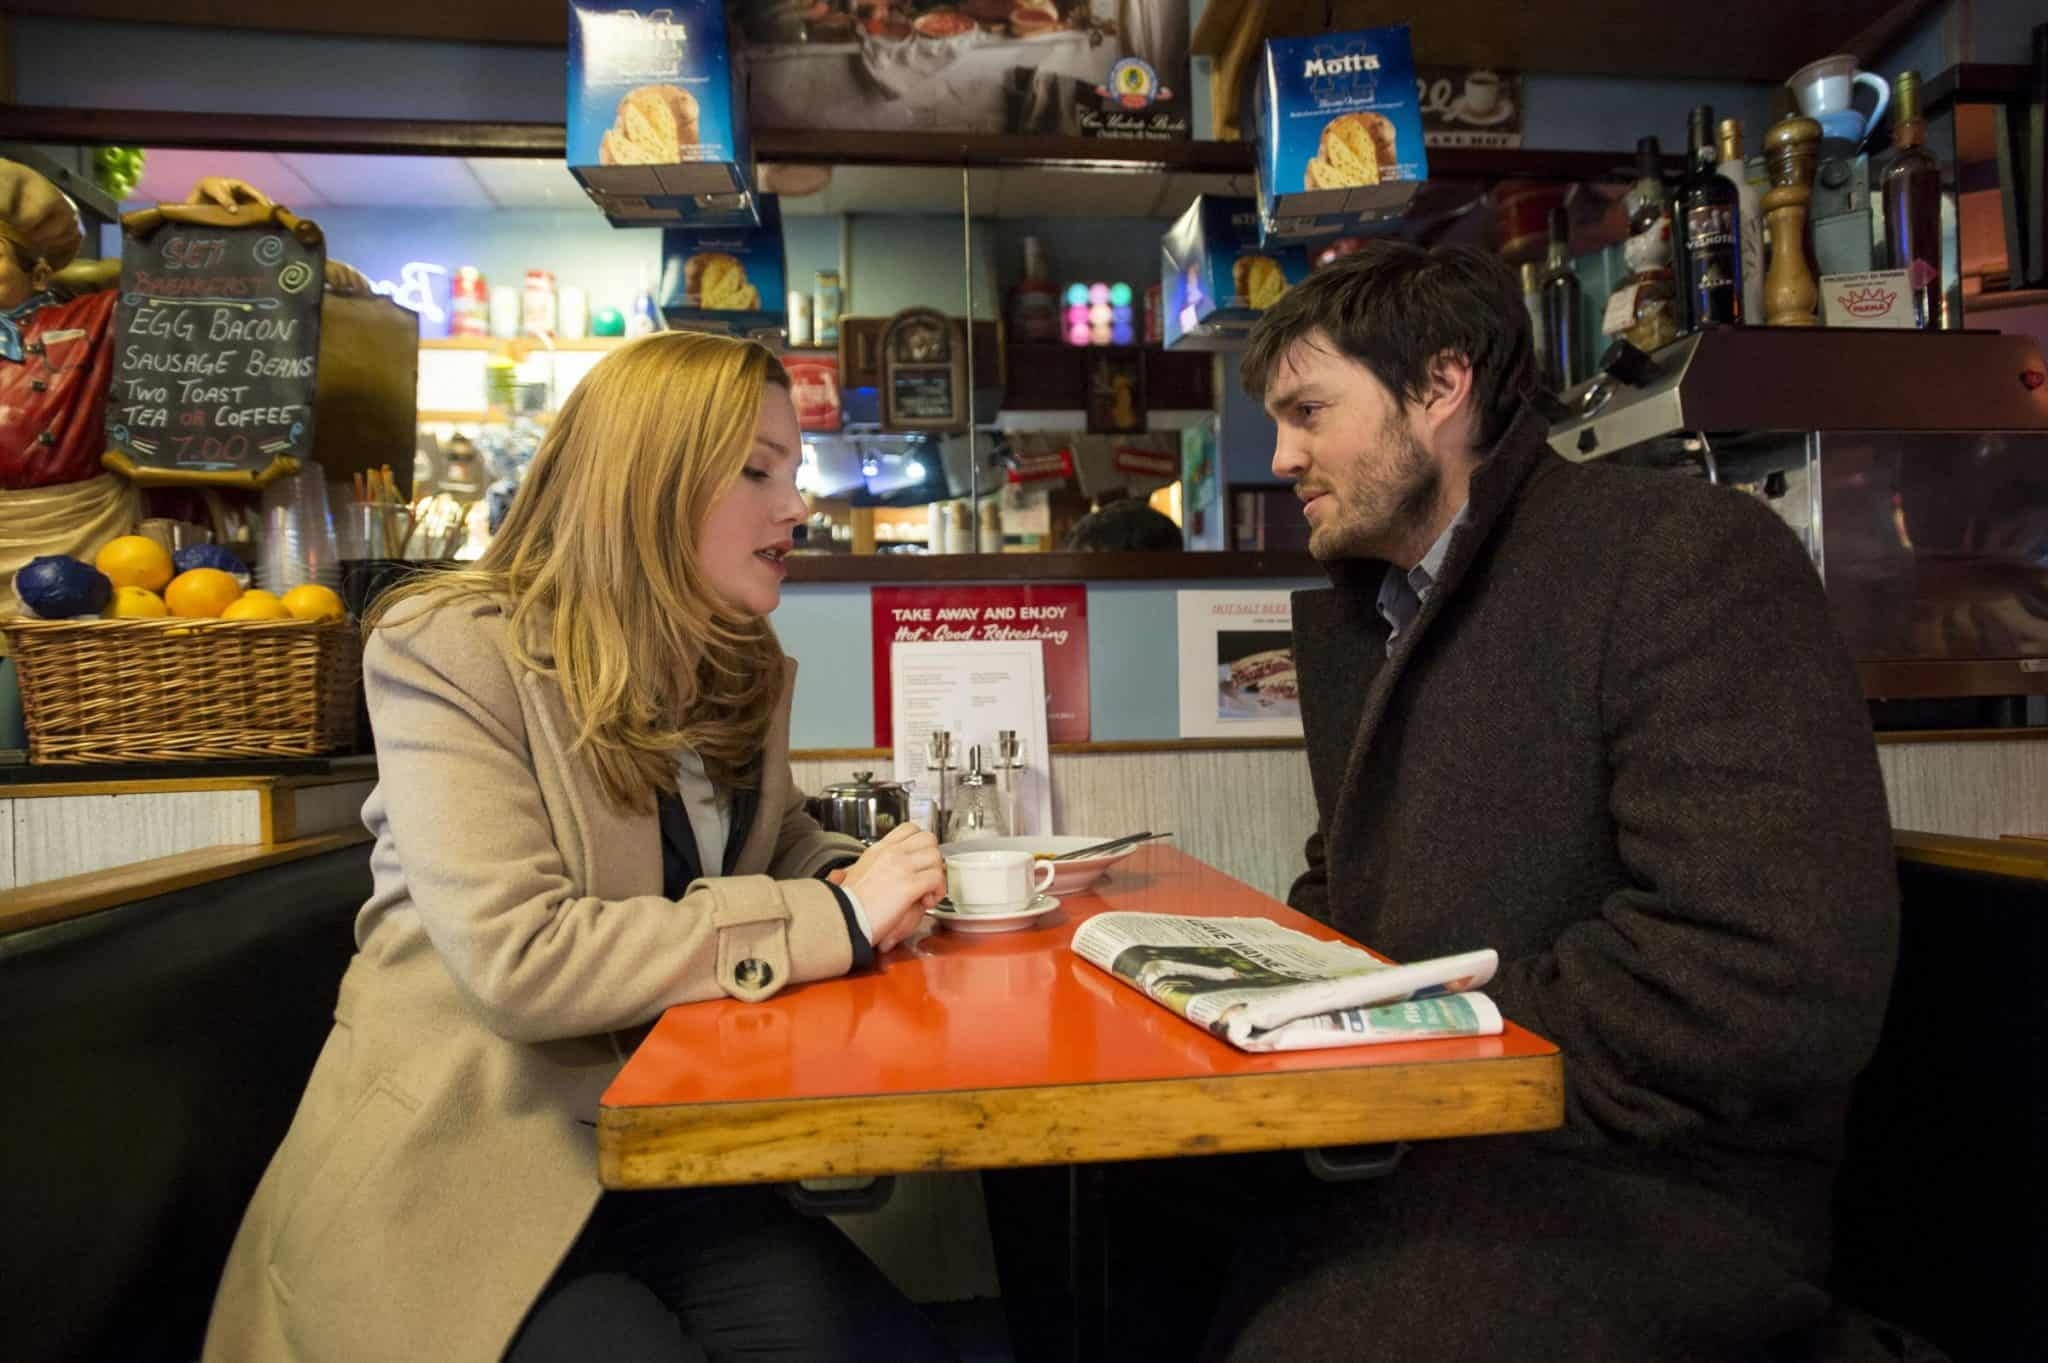 US Air Date Announced for JK Rowling's Cormoran Strike Series - I ...